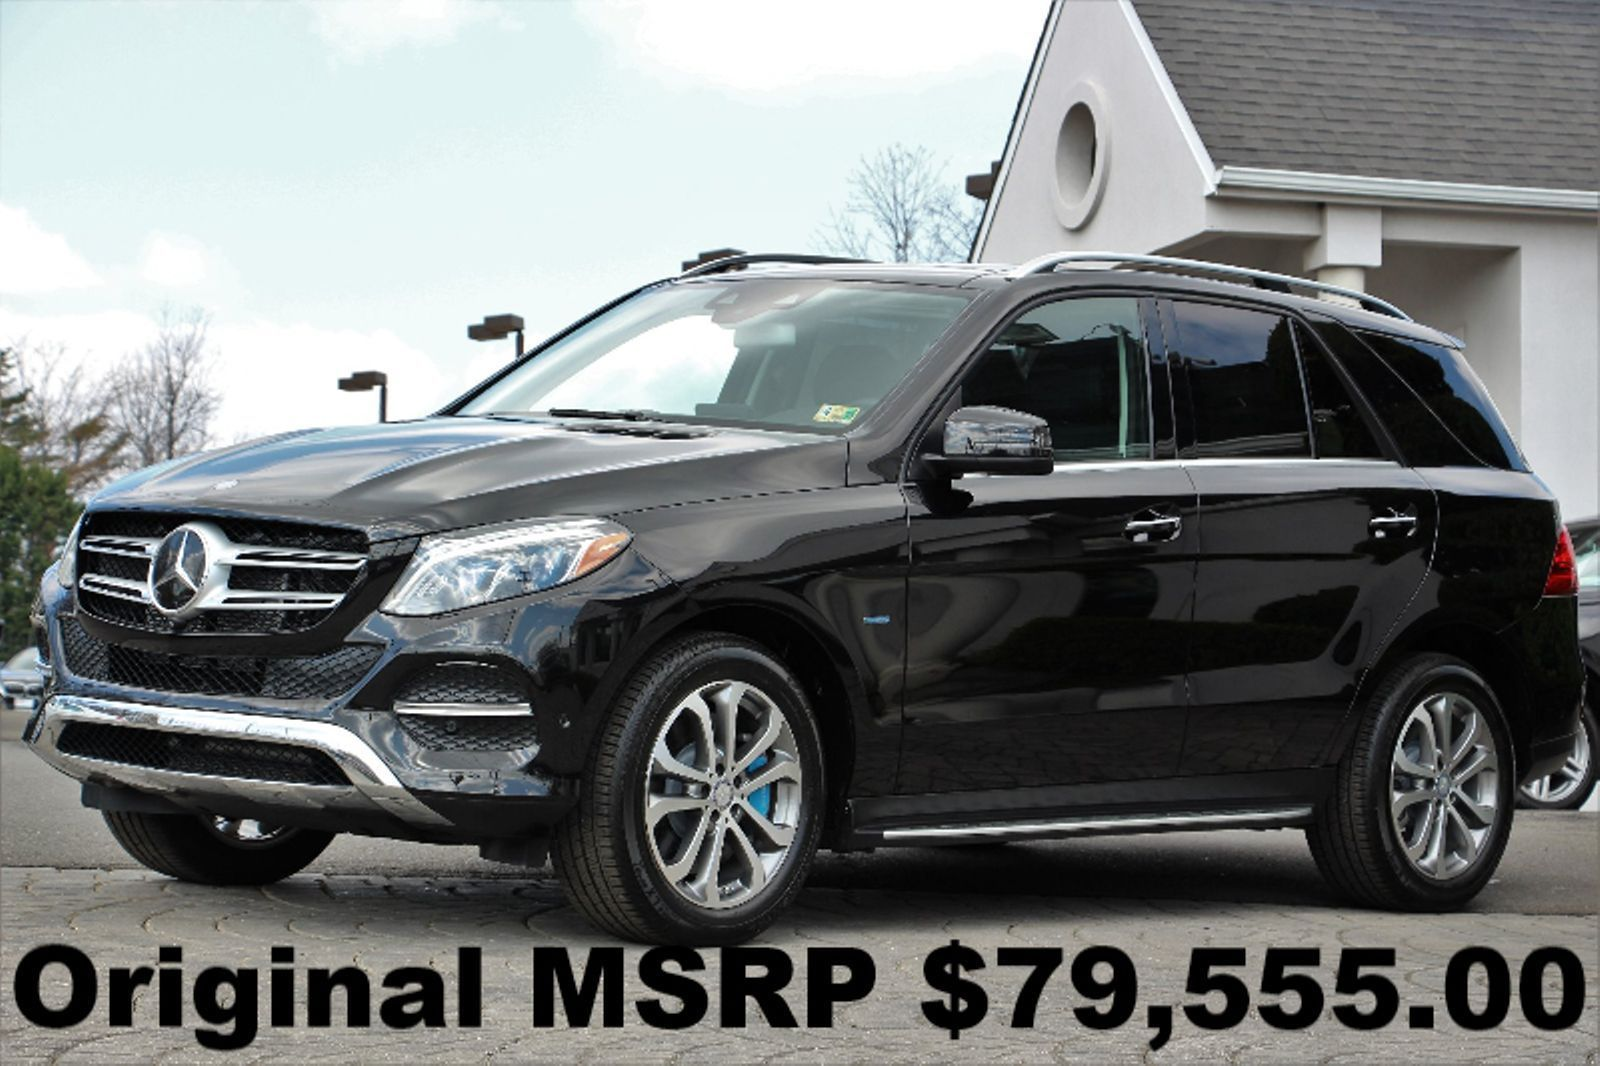 Great Mercedes Benz Gle Cl Gle550e 4matic 2017 P Iii Pkg Panorama Roof Distronic Plus With Steering Ist Rear Dvd Black 2018